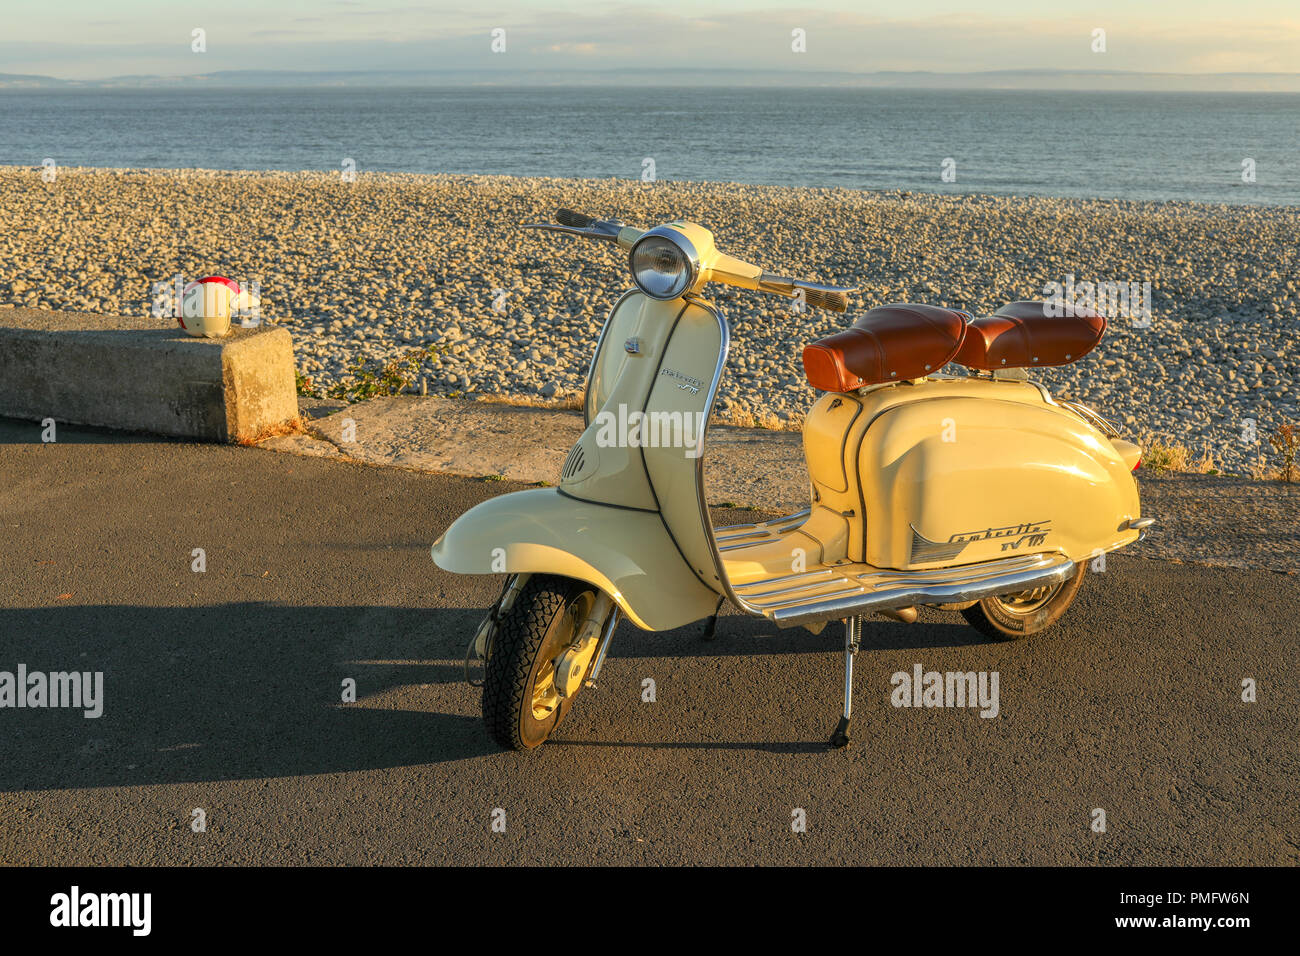 Lambretta Scooter, moped, on the beach front, Th Knap, near Barry Island, Barry, Wales, UK. Stock Photo